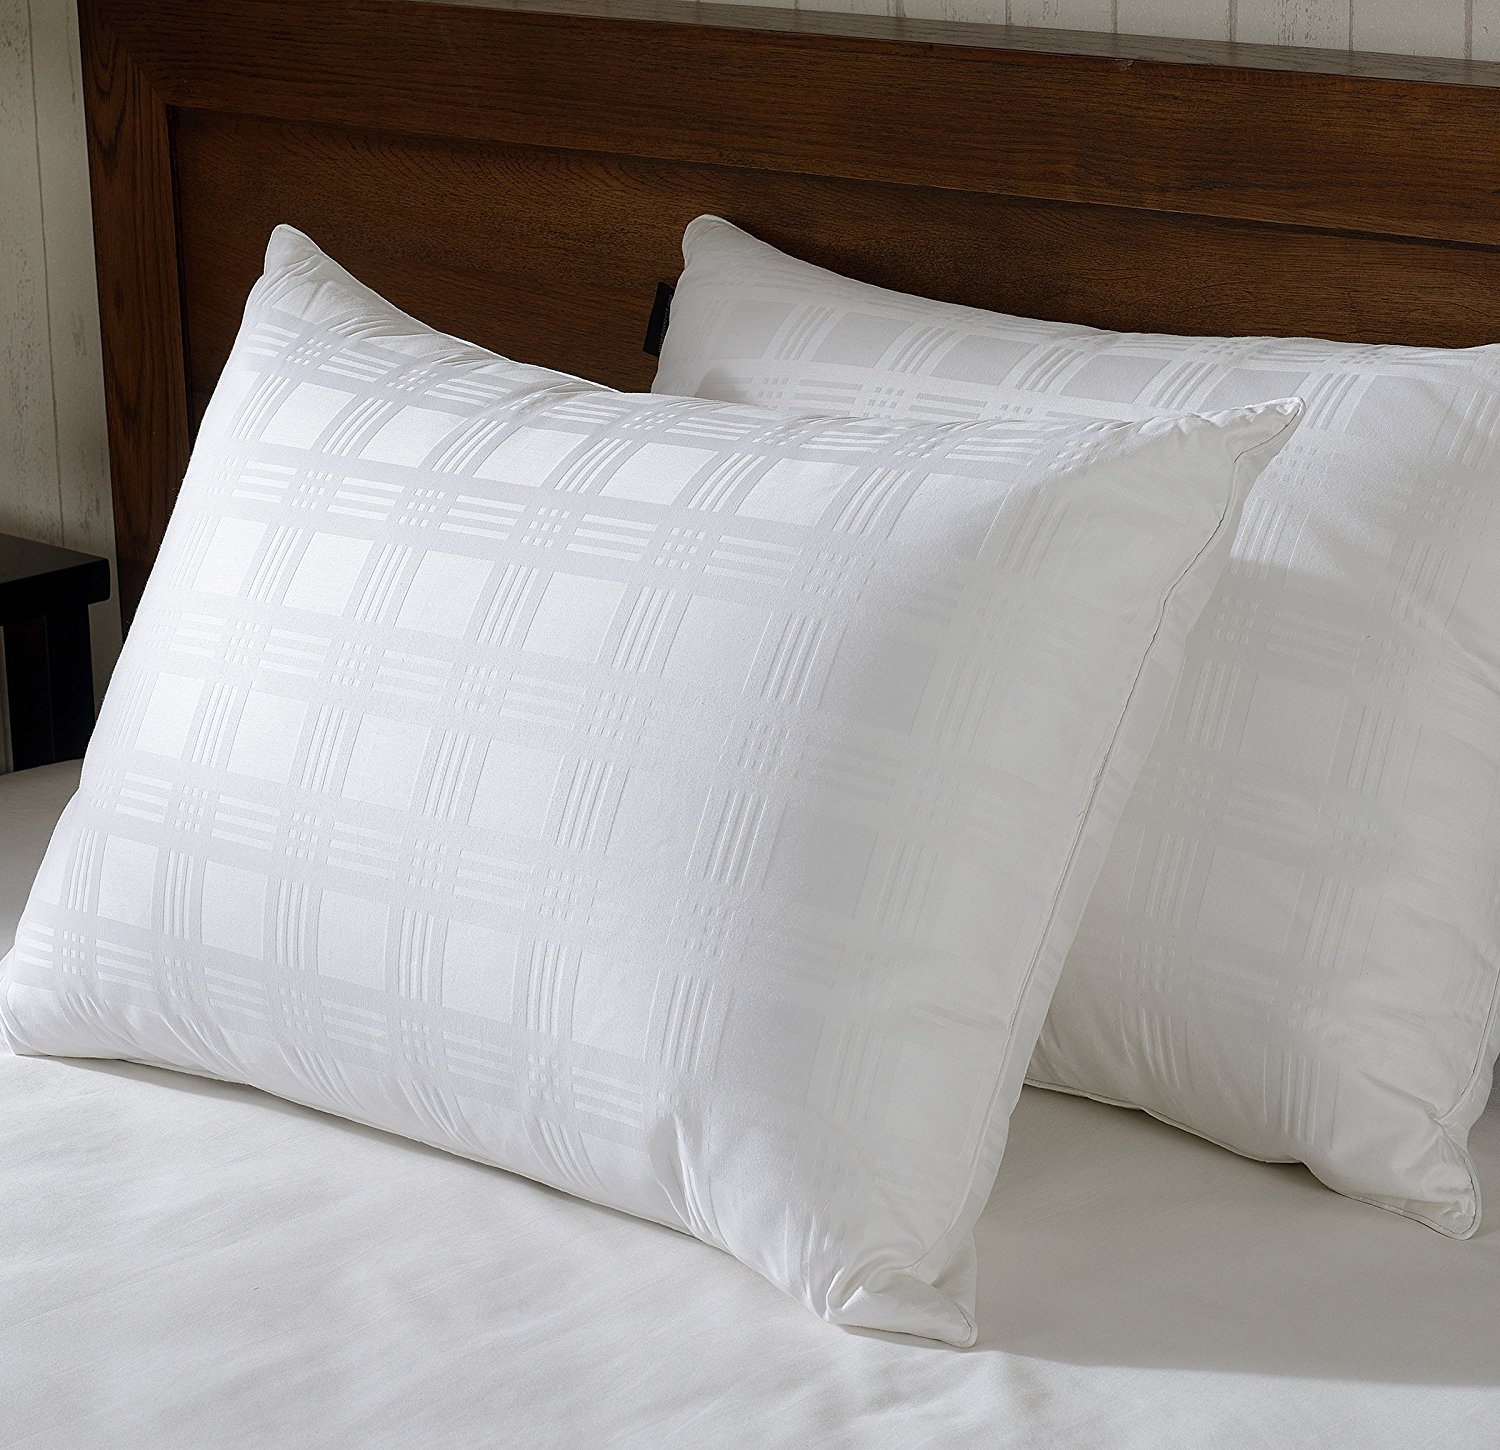 Set of 2 Luxury White Down Bed Pillow, 600 Thread Count Egyptian Cotton Fabric , 650 Fill Power,white